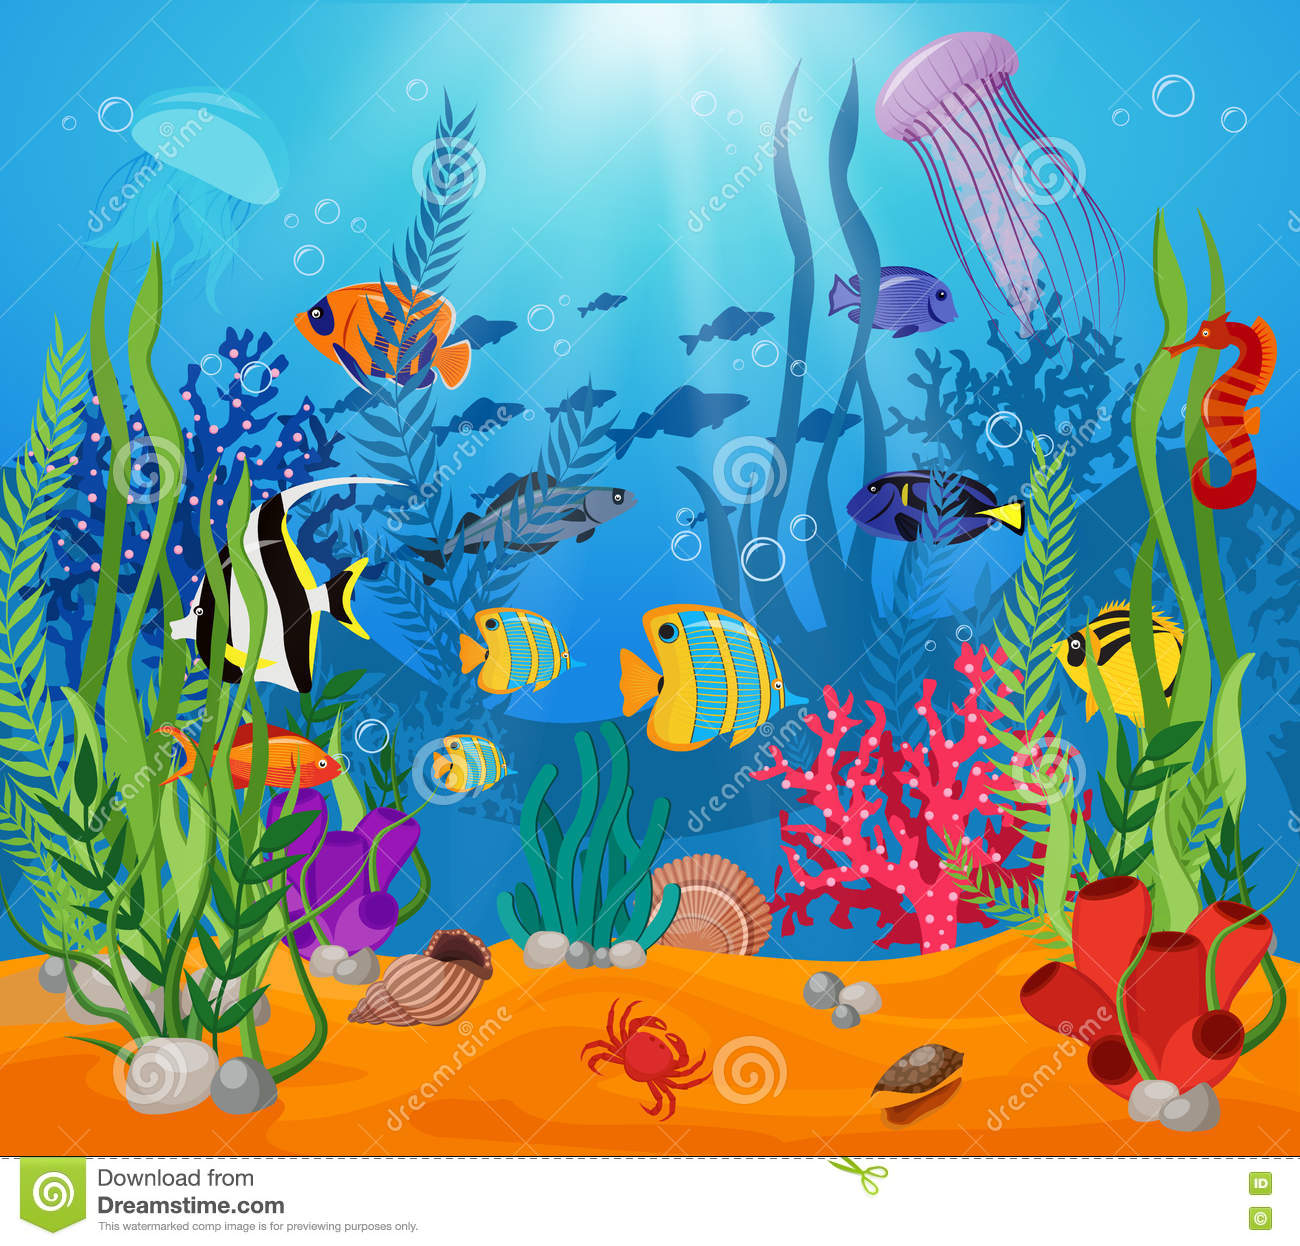 Cute Algae Wallpaper Sea Life Animals Plants Composition Stock Vector Image